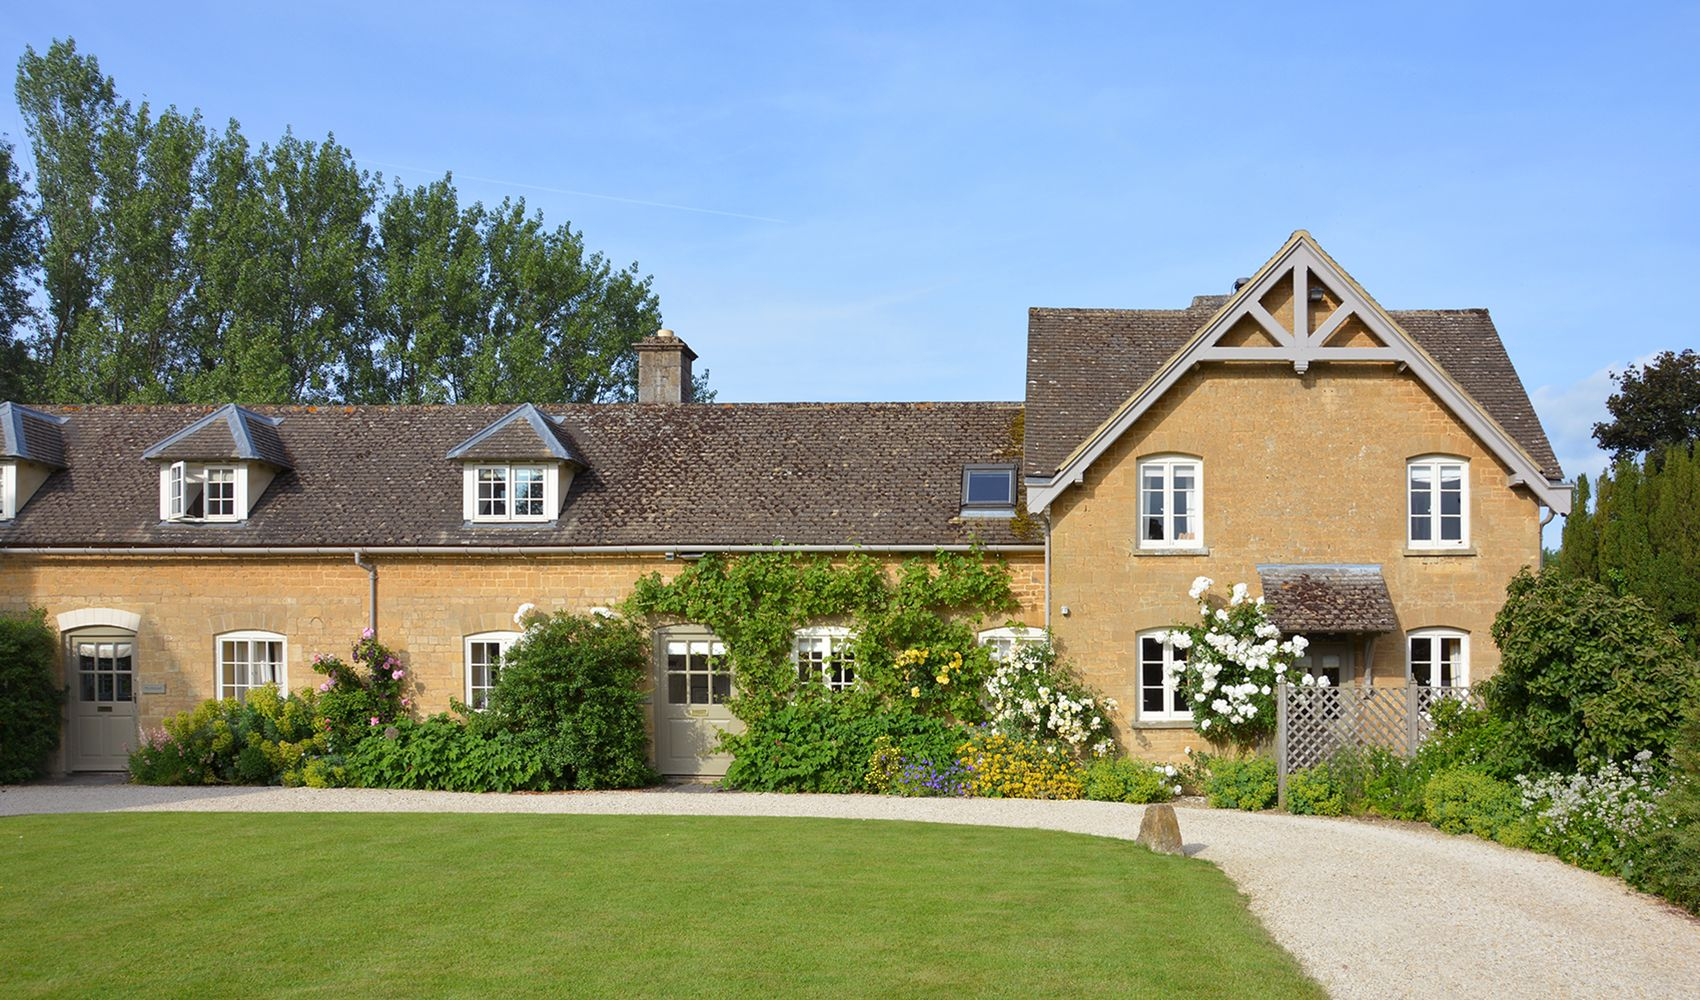 Goodwood Cottage, sleeping 5, was originally built for the stable grooms